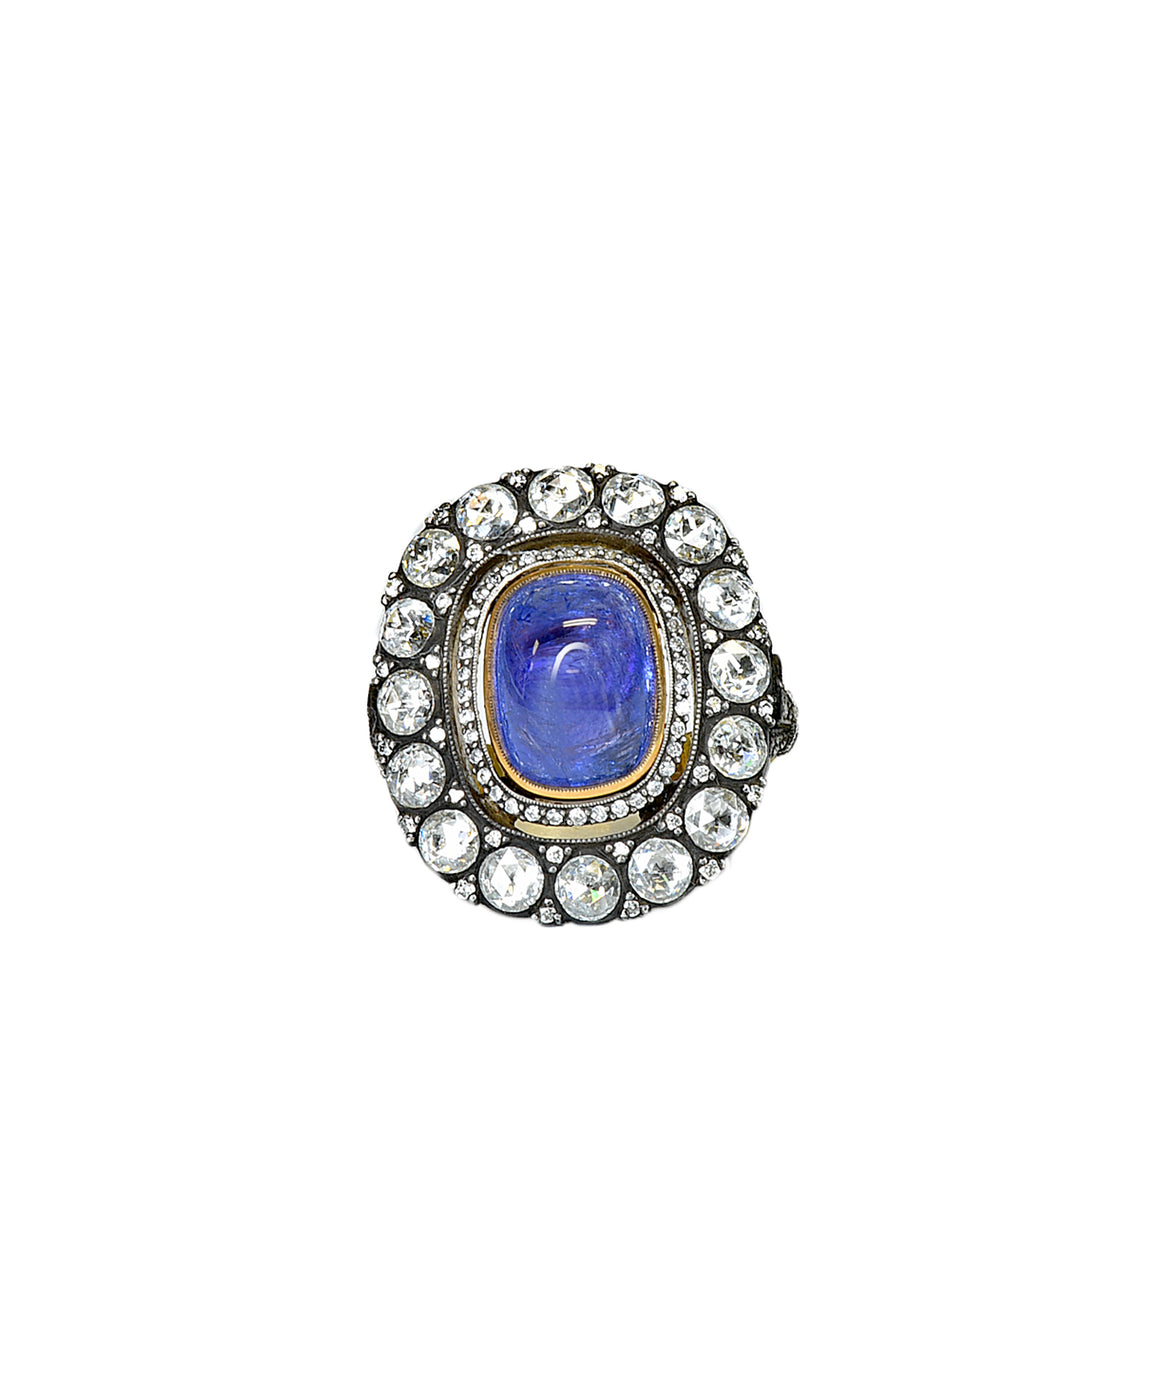 Tanzanite ring with rose cut diamonds